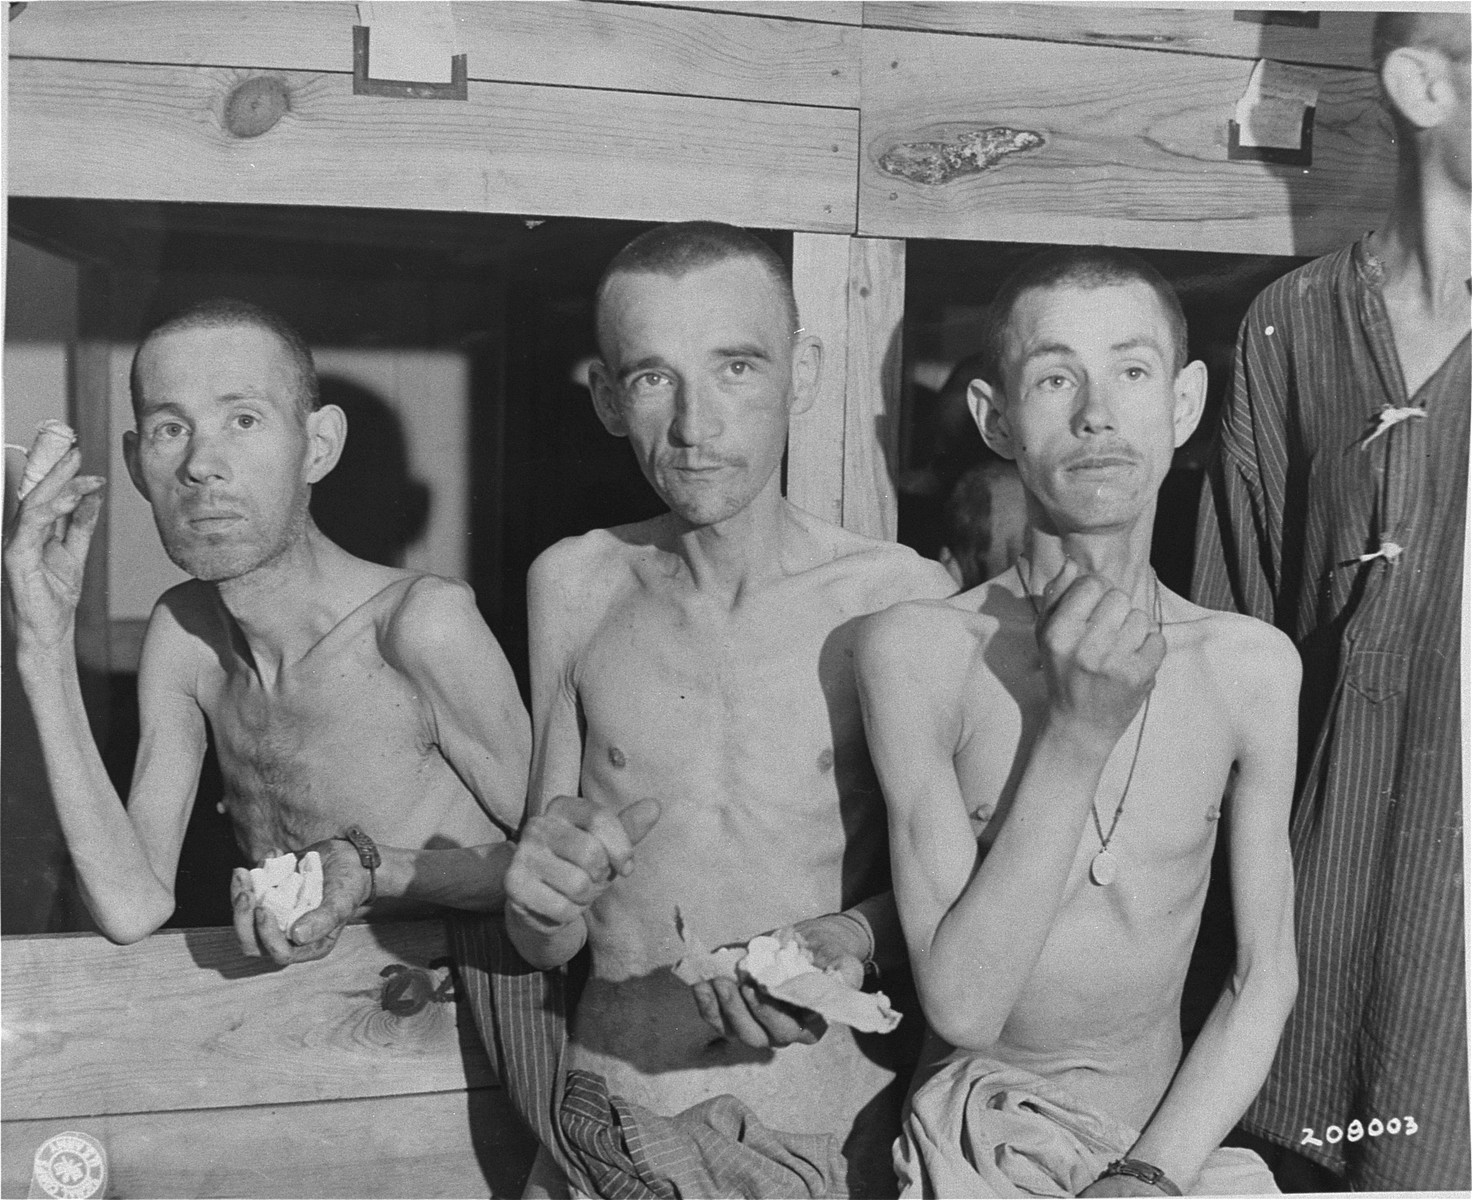 Three survivors suck on sugar cubes provided by American soldiers in the infirmary barracks for non-Jewish prisoners in the Ebensee concentration camp.